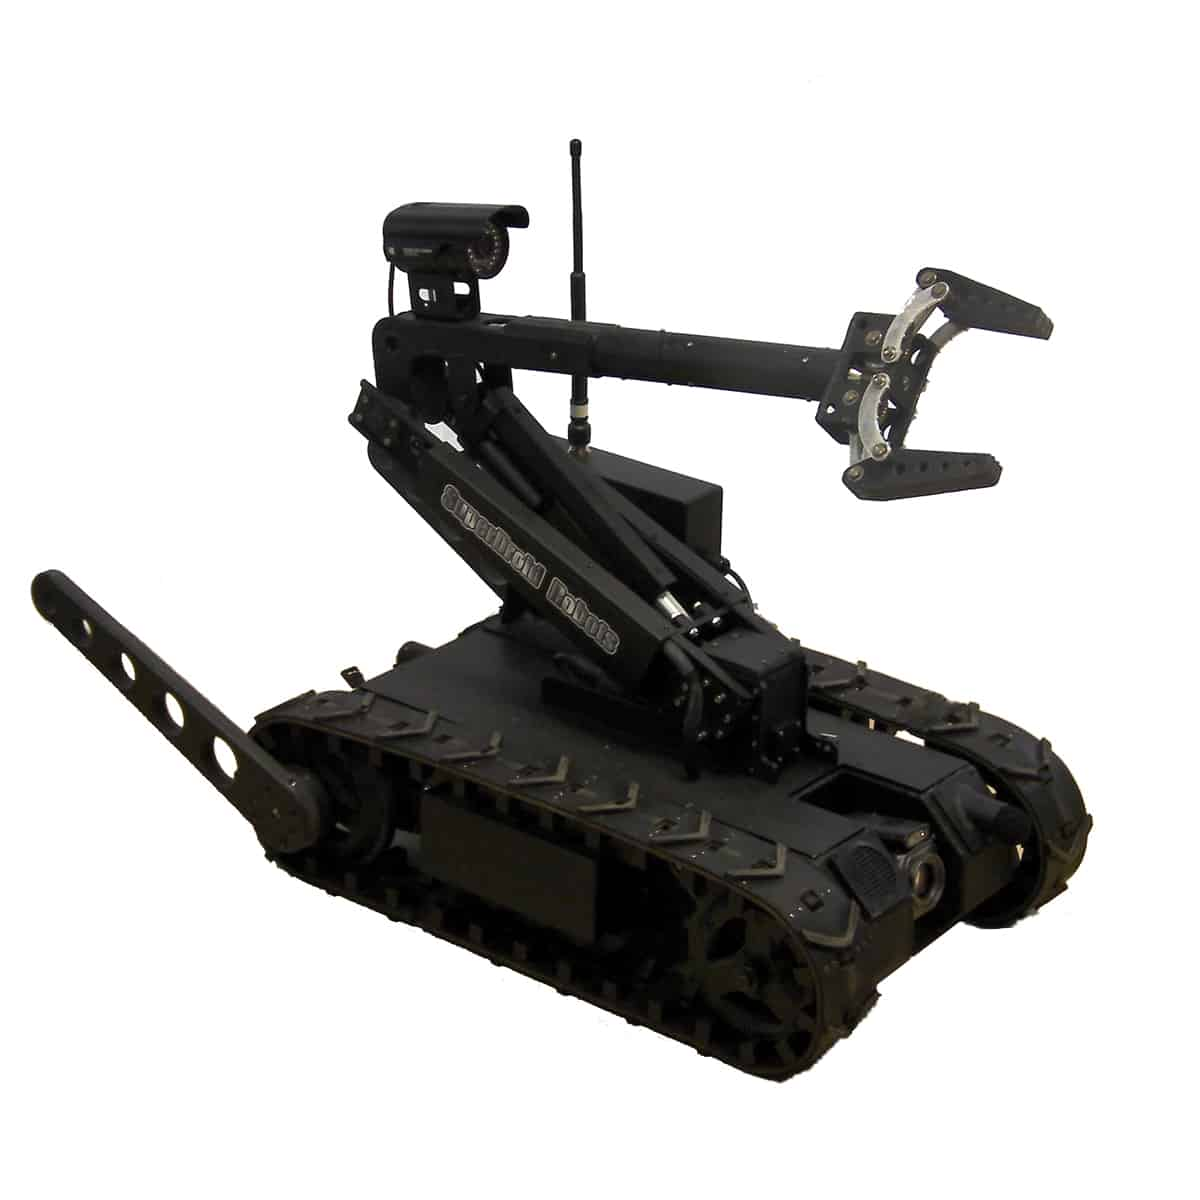 New LT2 and LT2-F Tactical Robot Videos